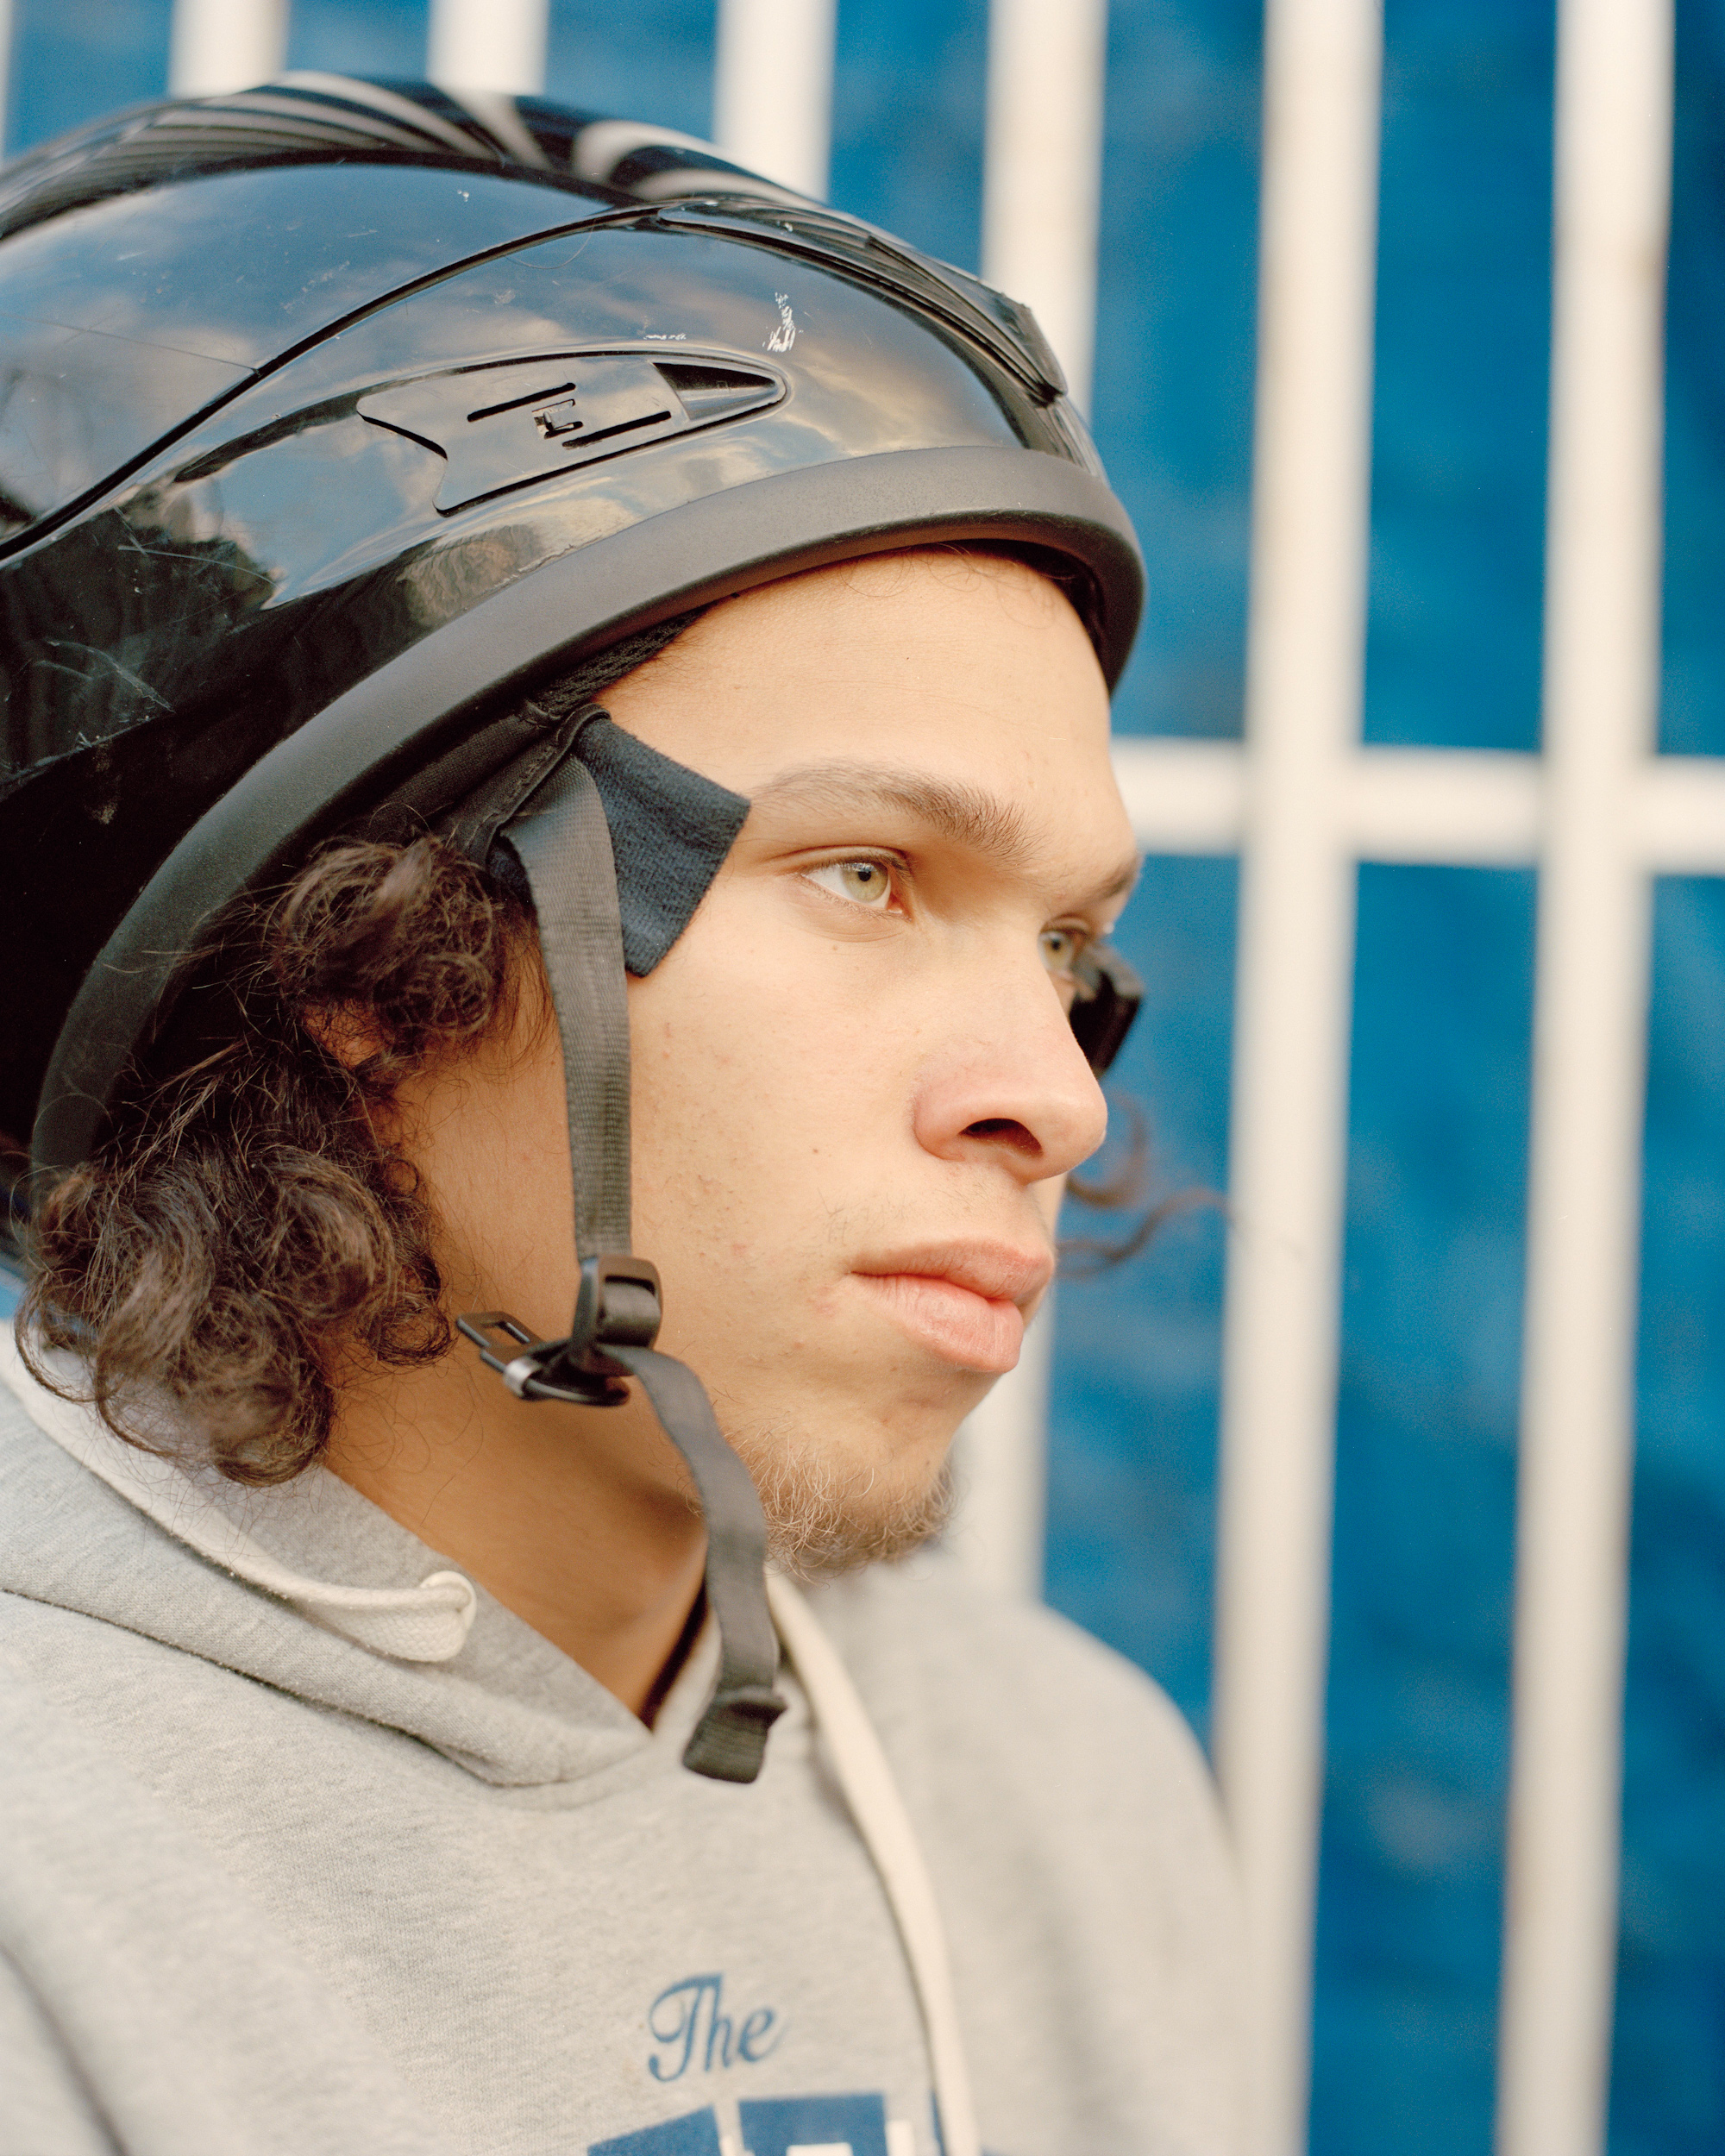 Color, film photography portrait by Cian Oba-Smith teen, youth, motorbike, London